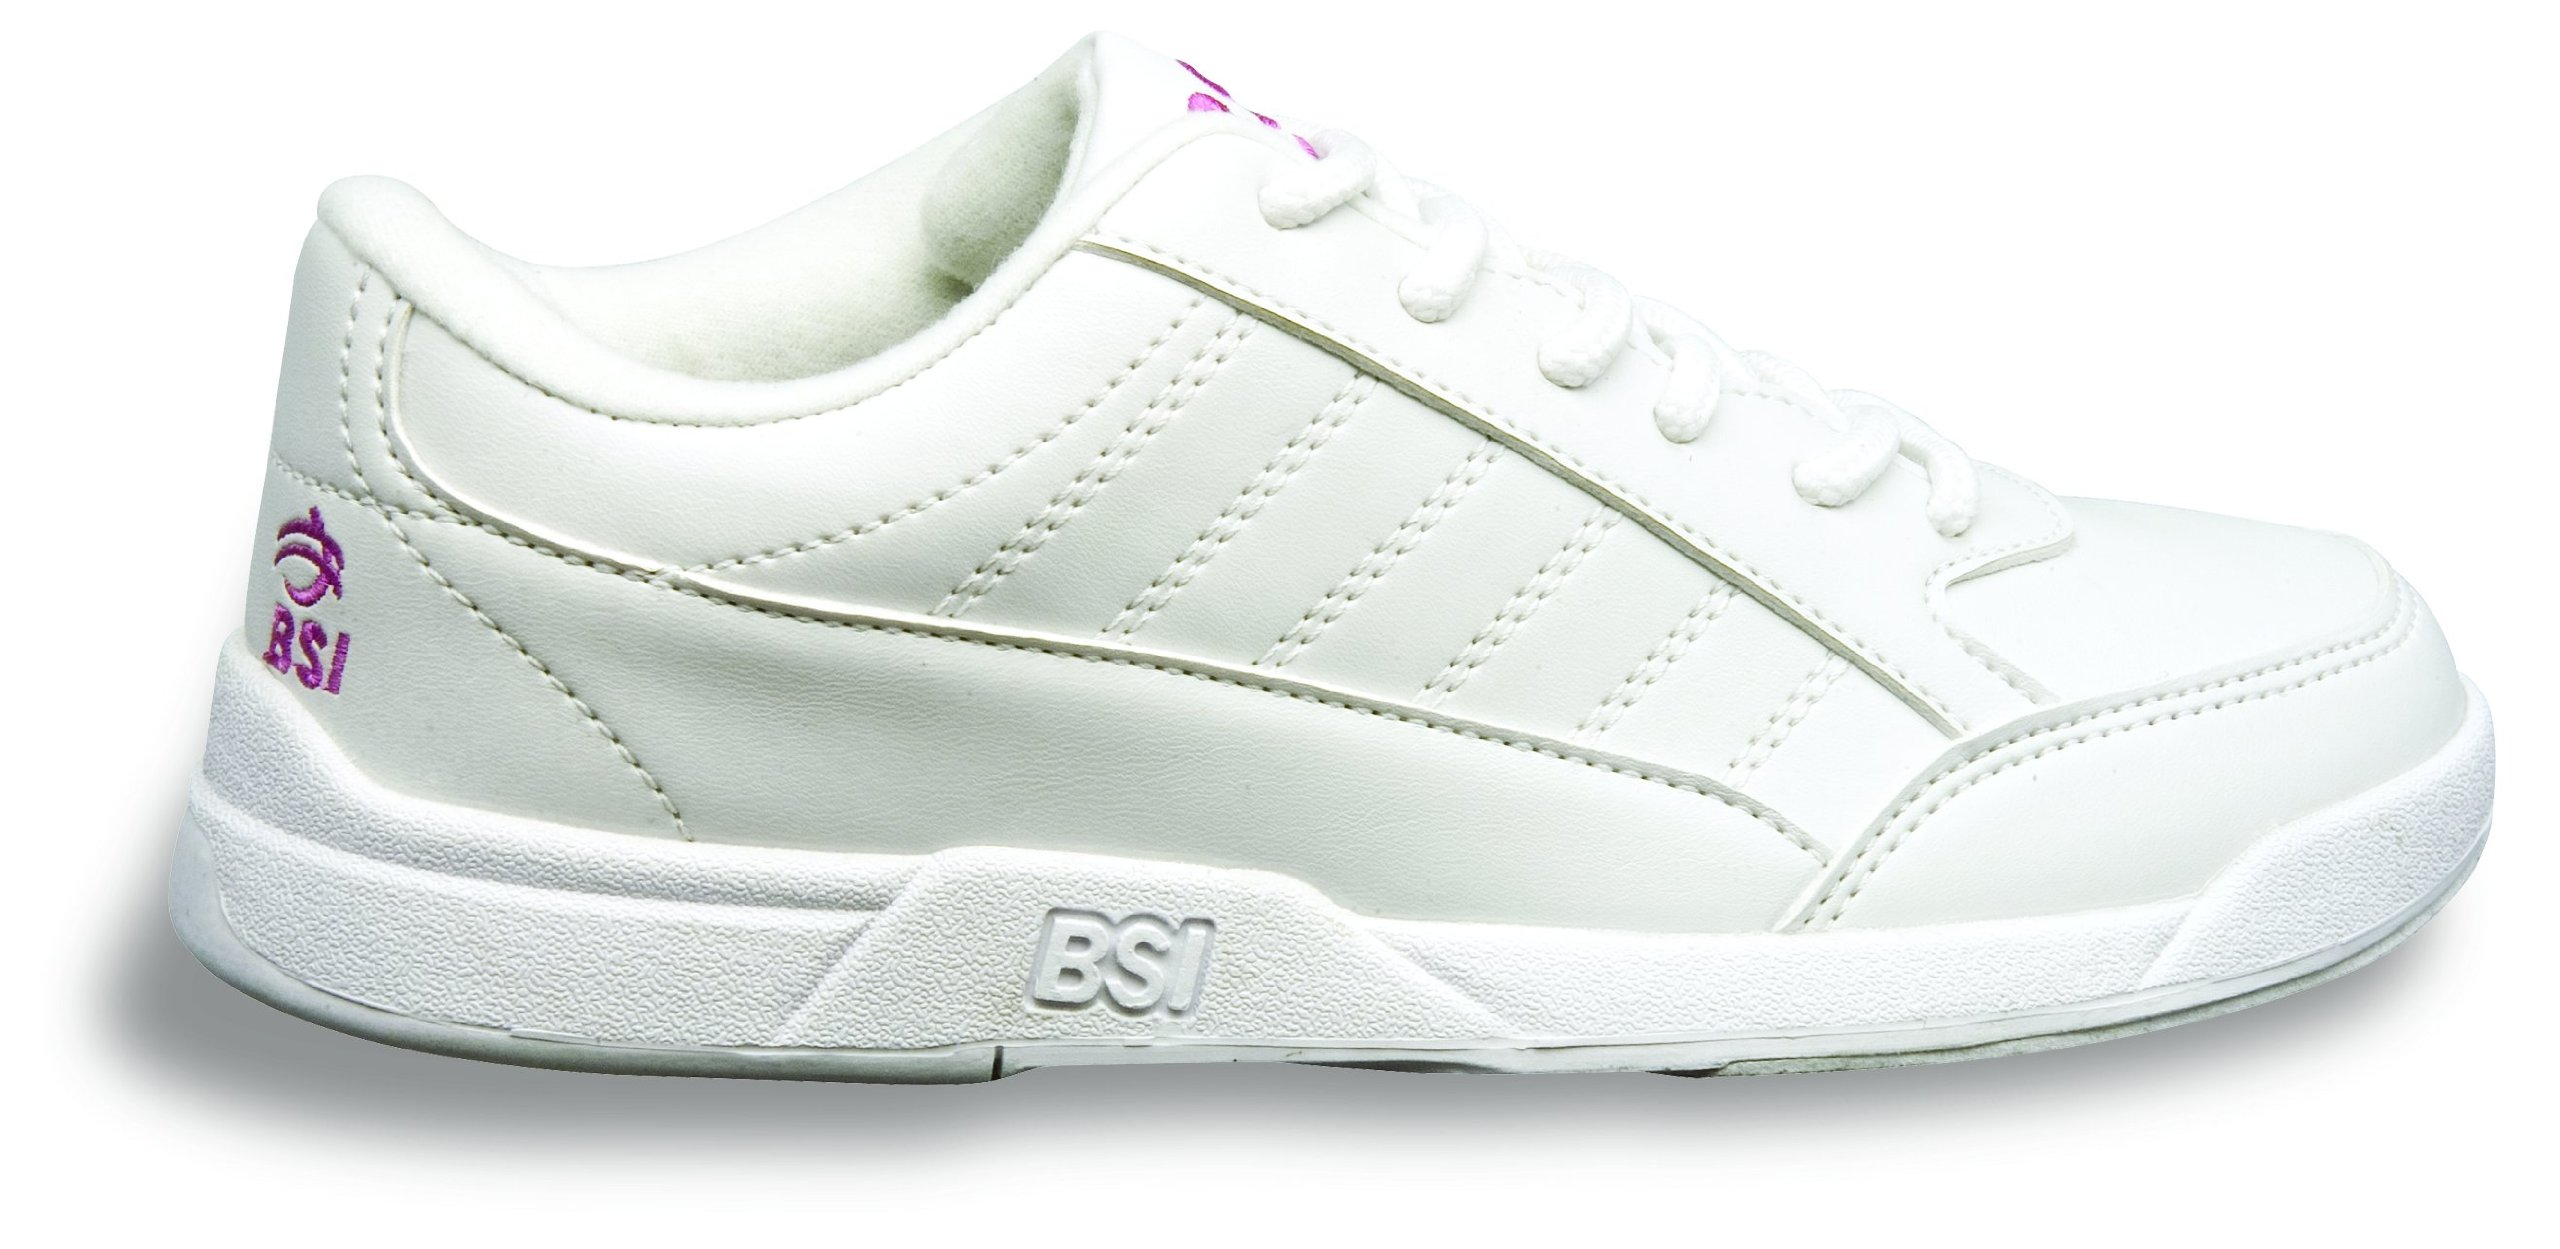 BSI Girl's Basic #432 Bowling Shoes, White, Size 1.0